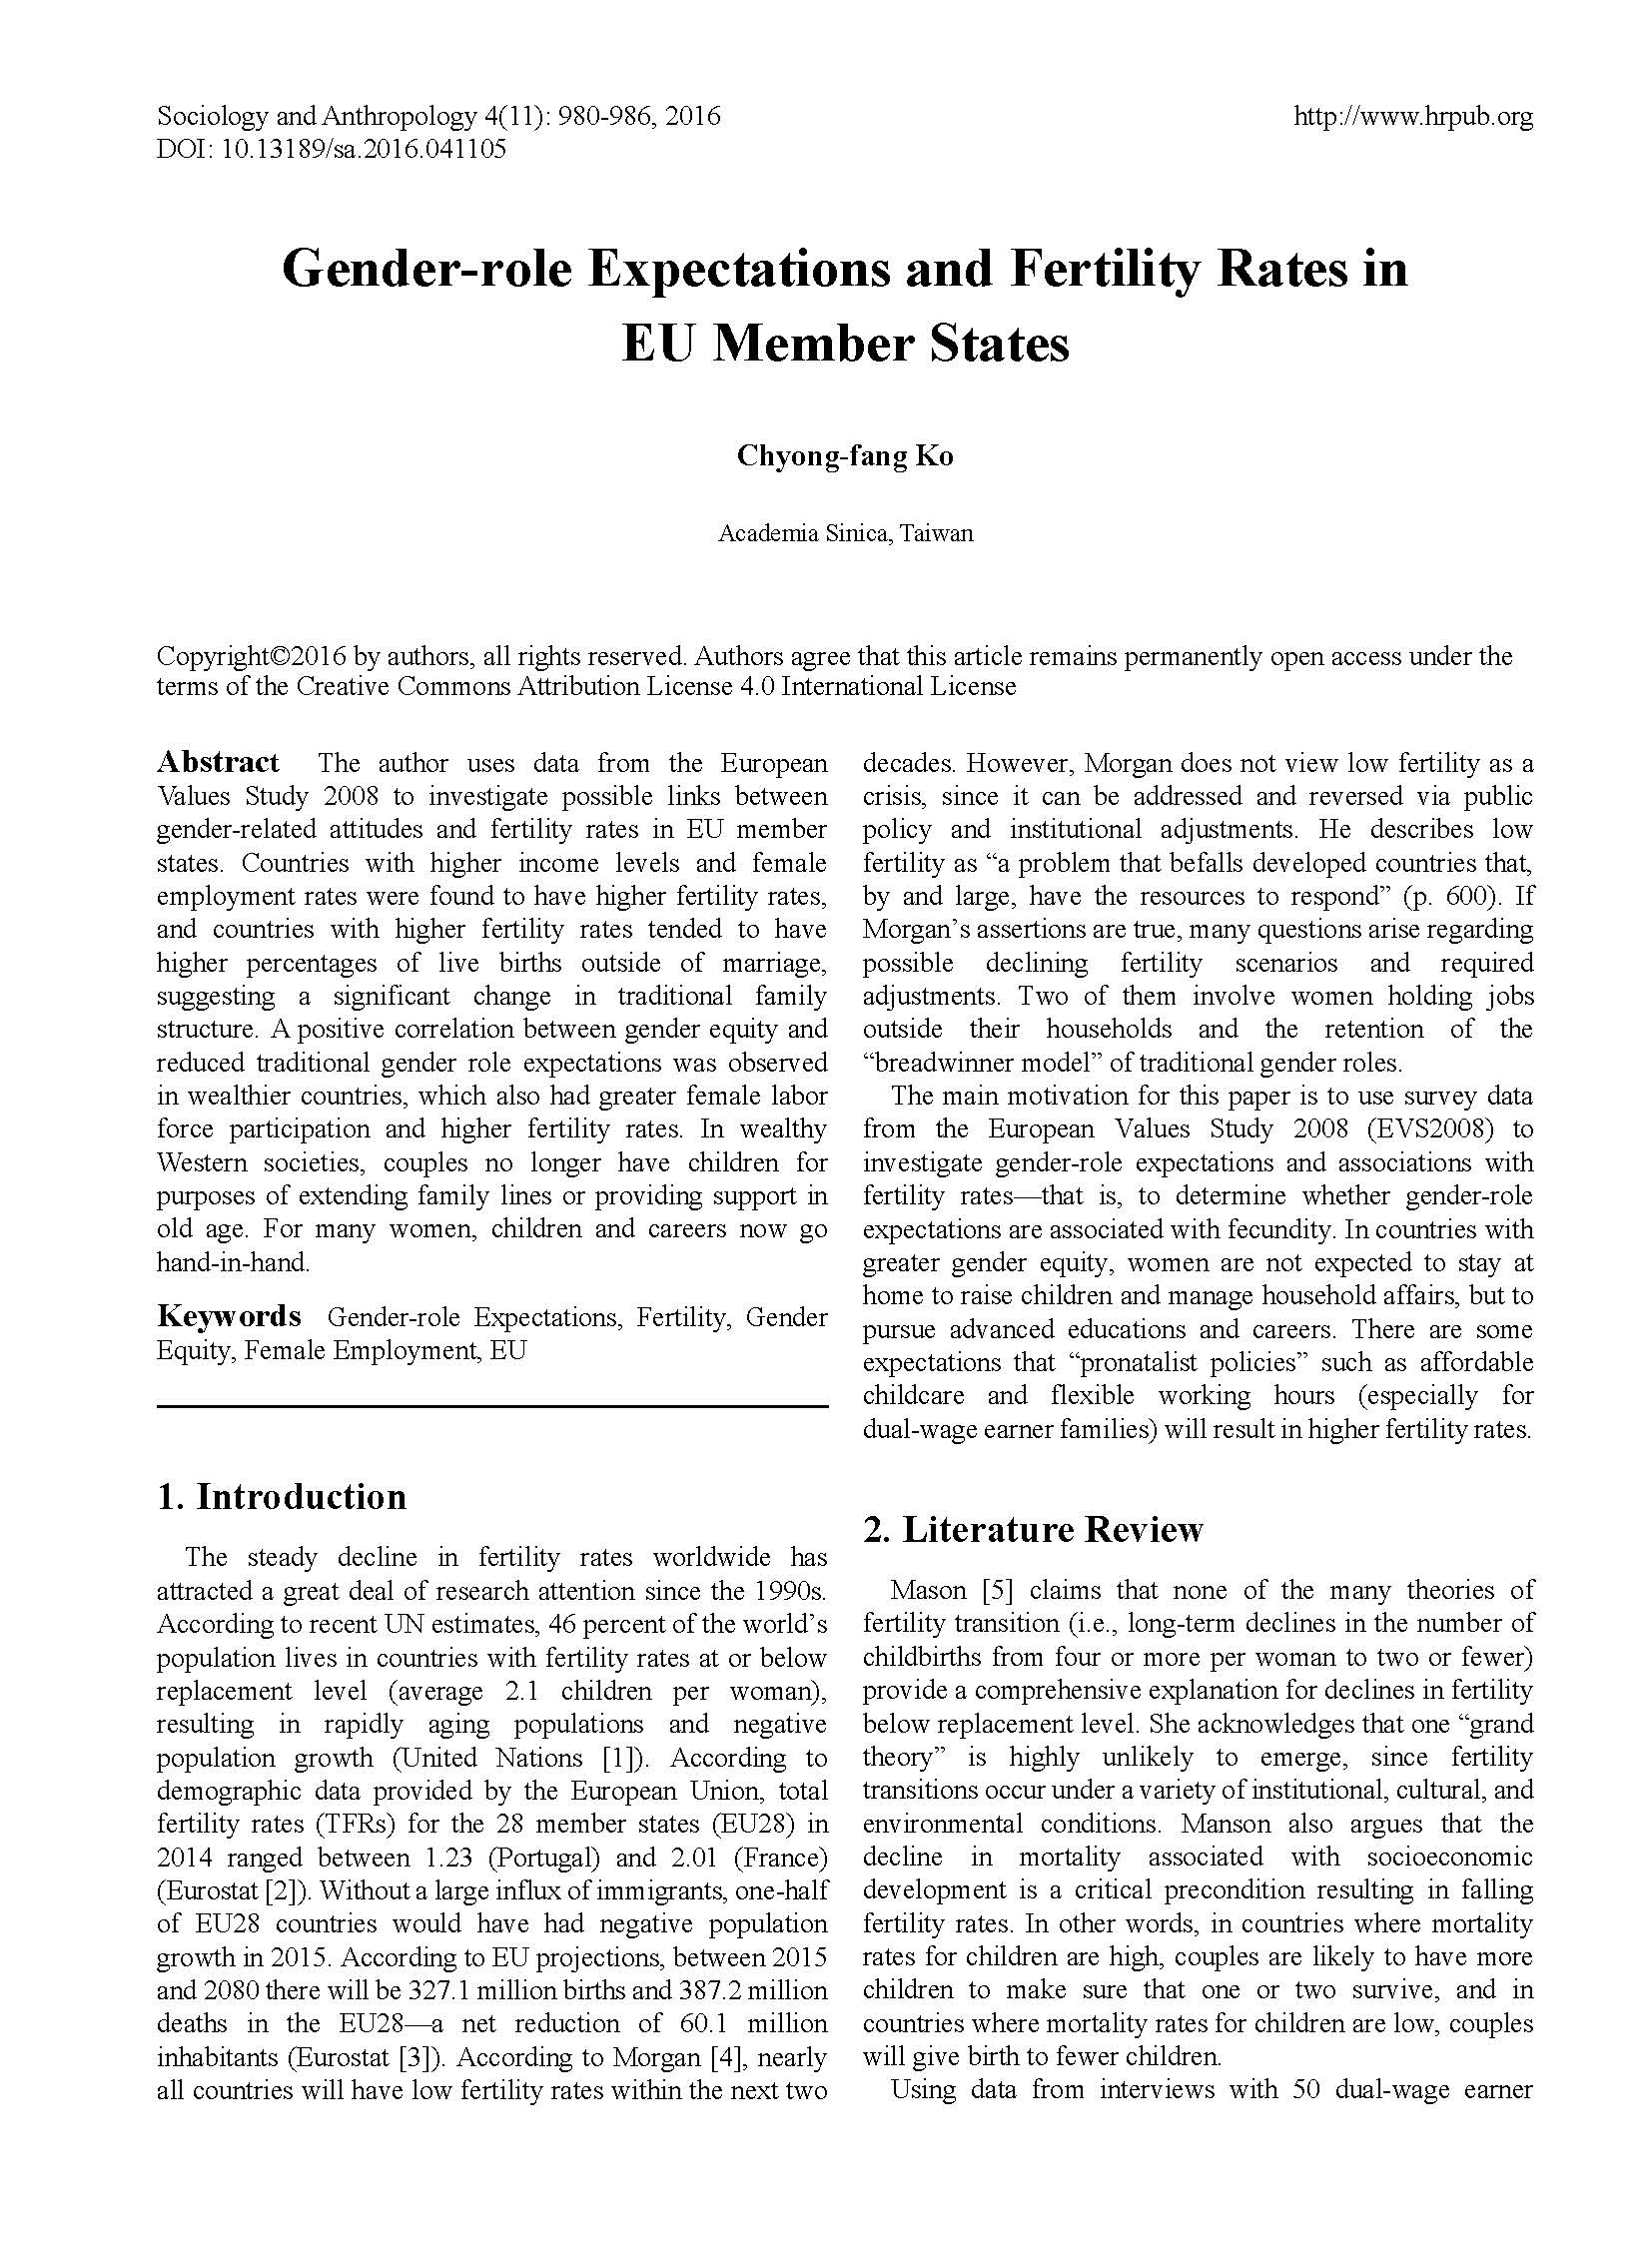 Gender-role Expectations and Fertility Rates in EU Member States